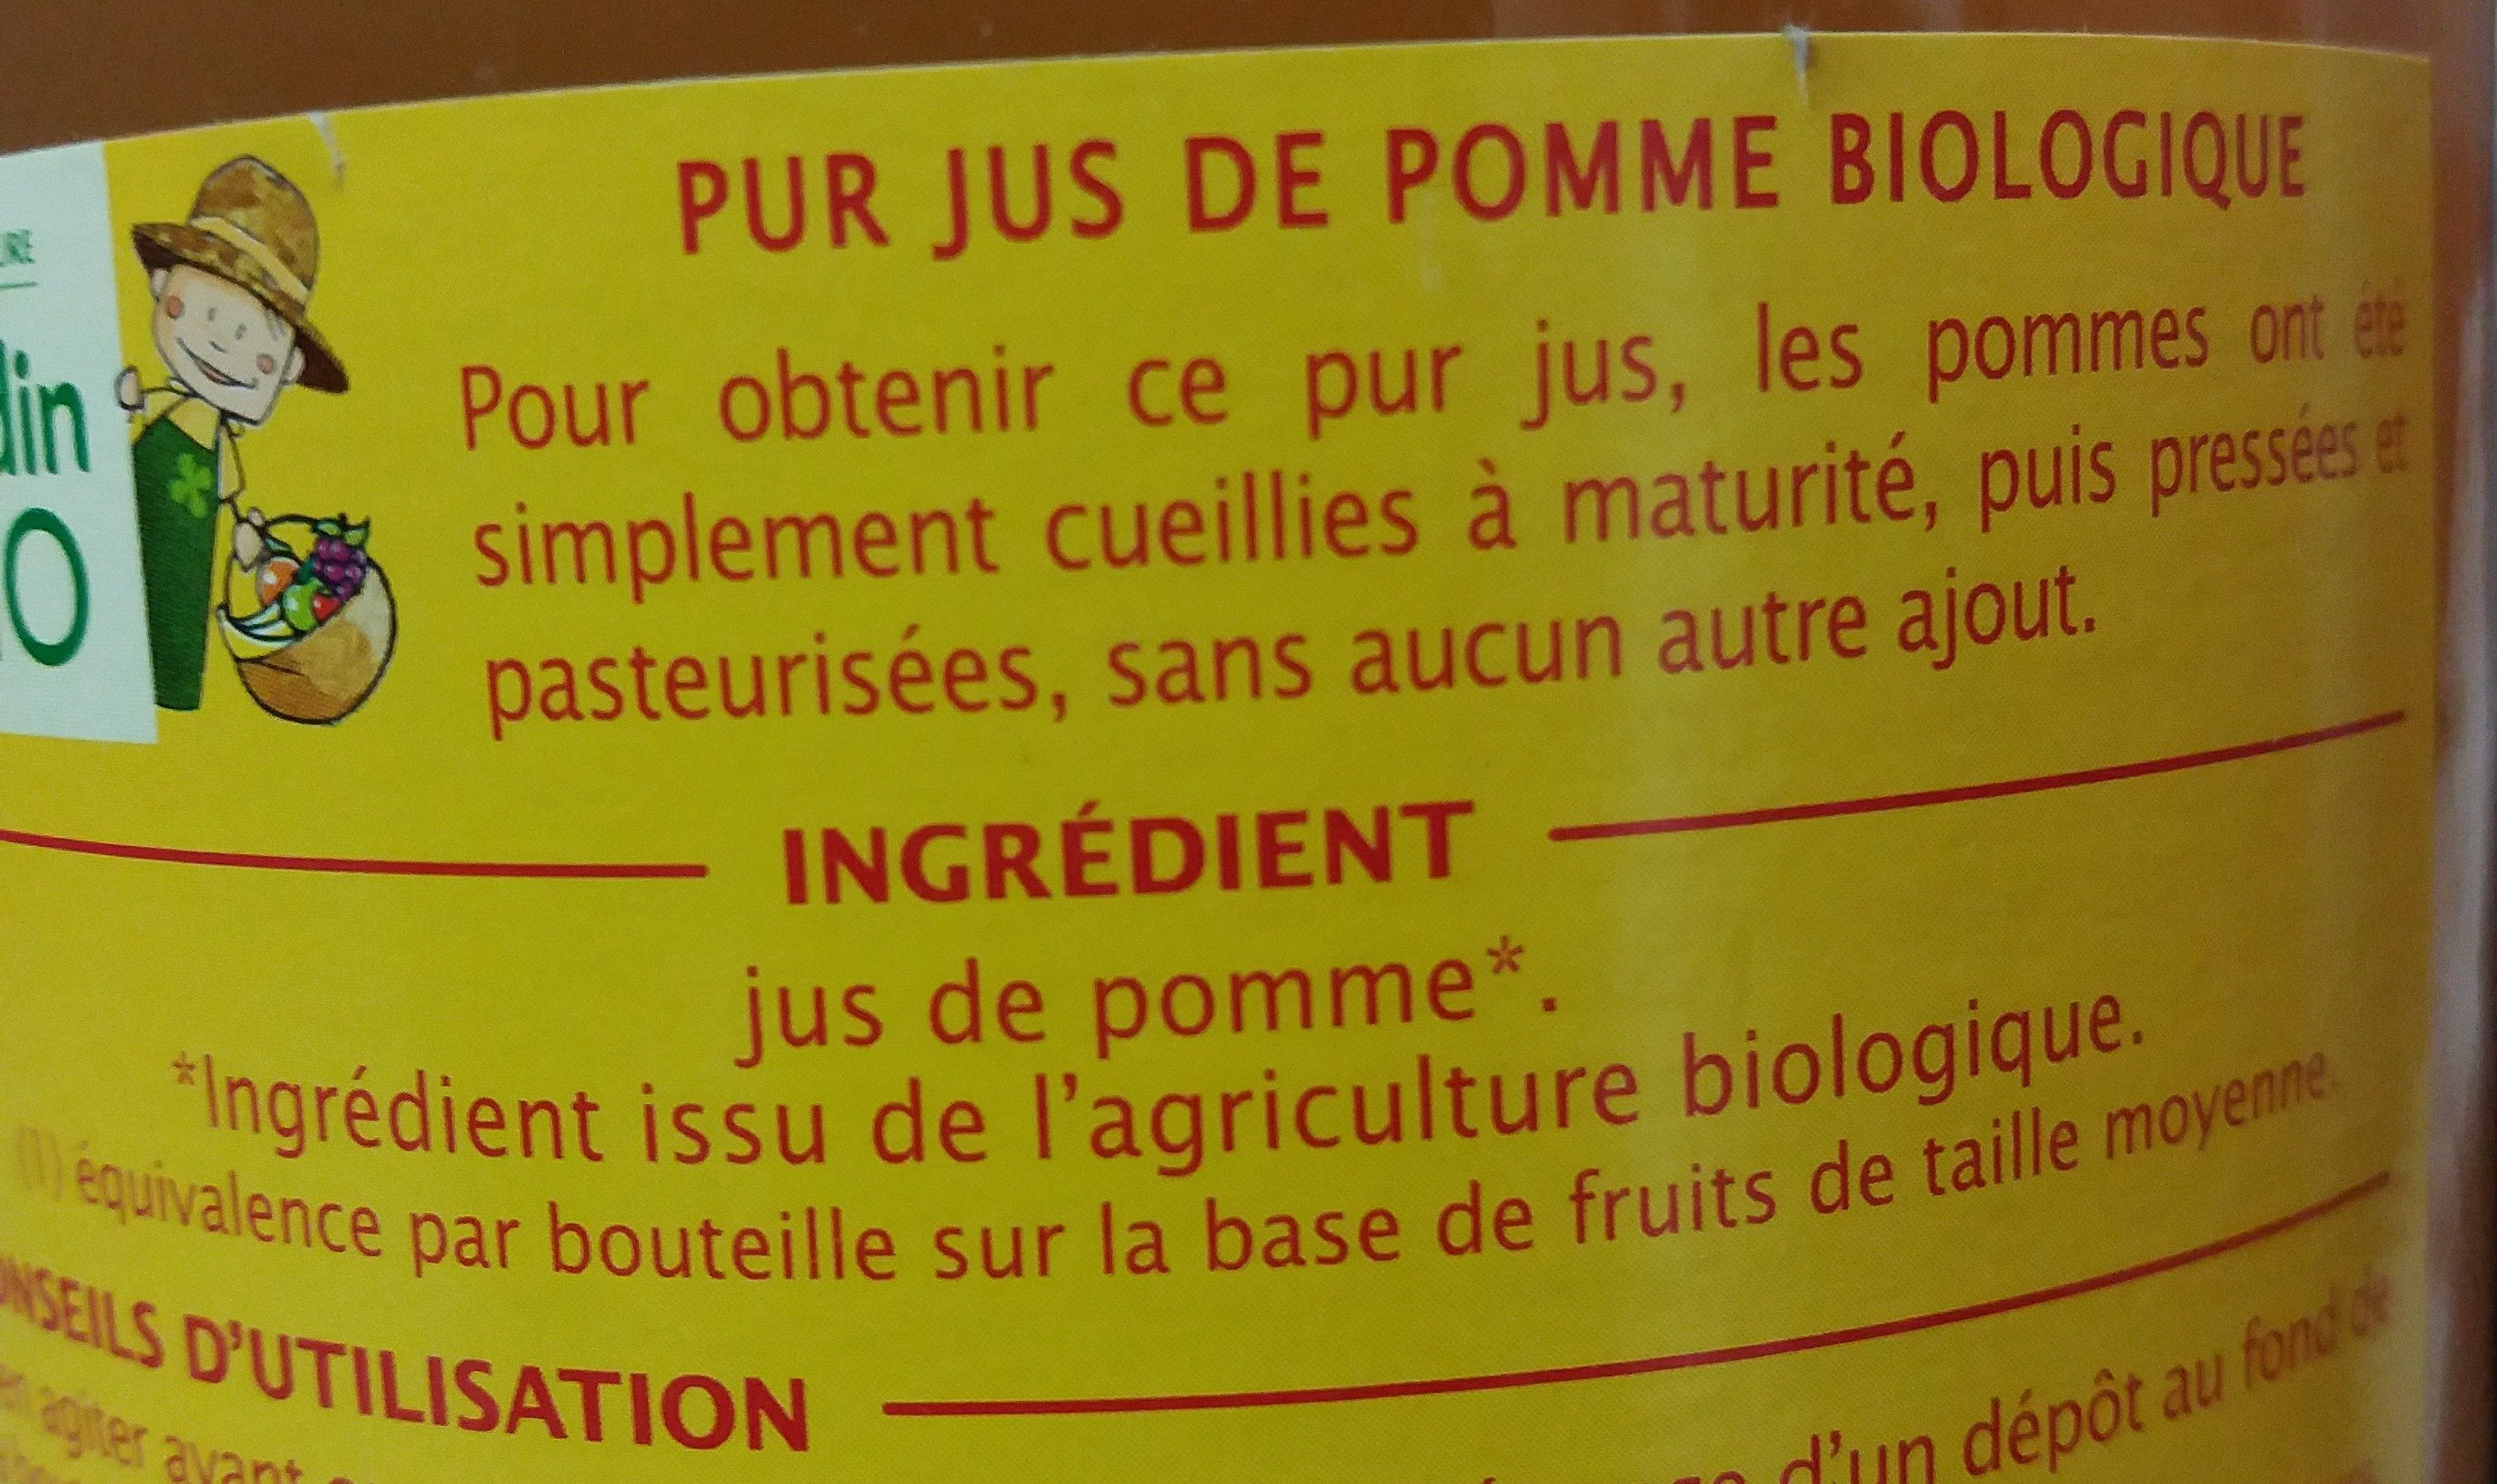 Pur jus de pomme trouble - Ingredients